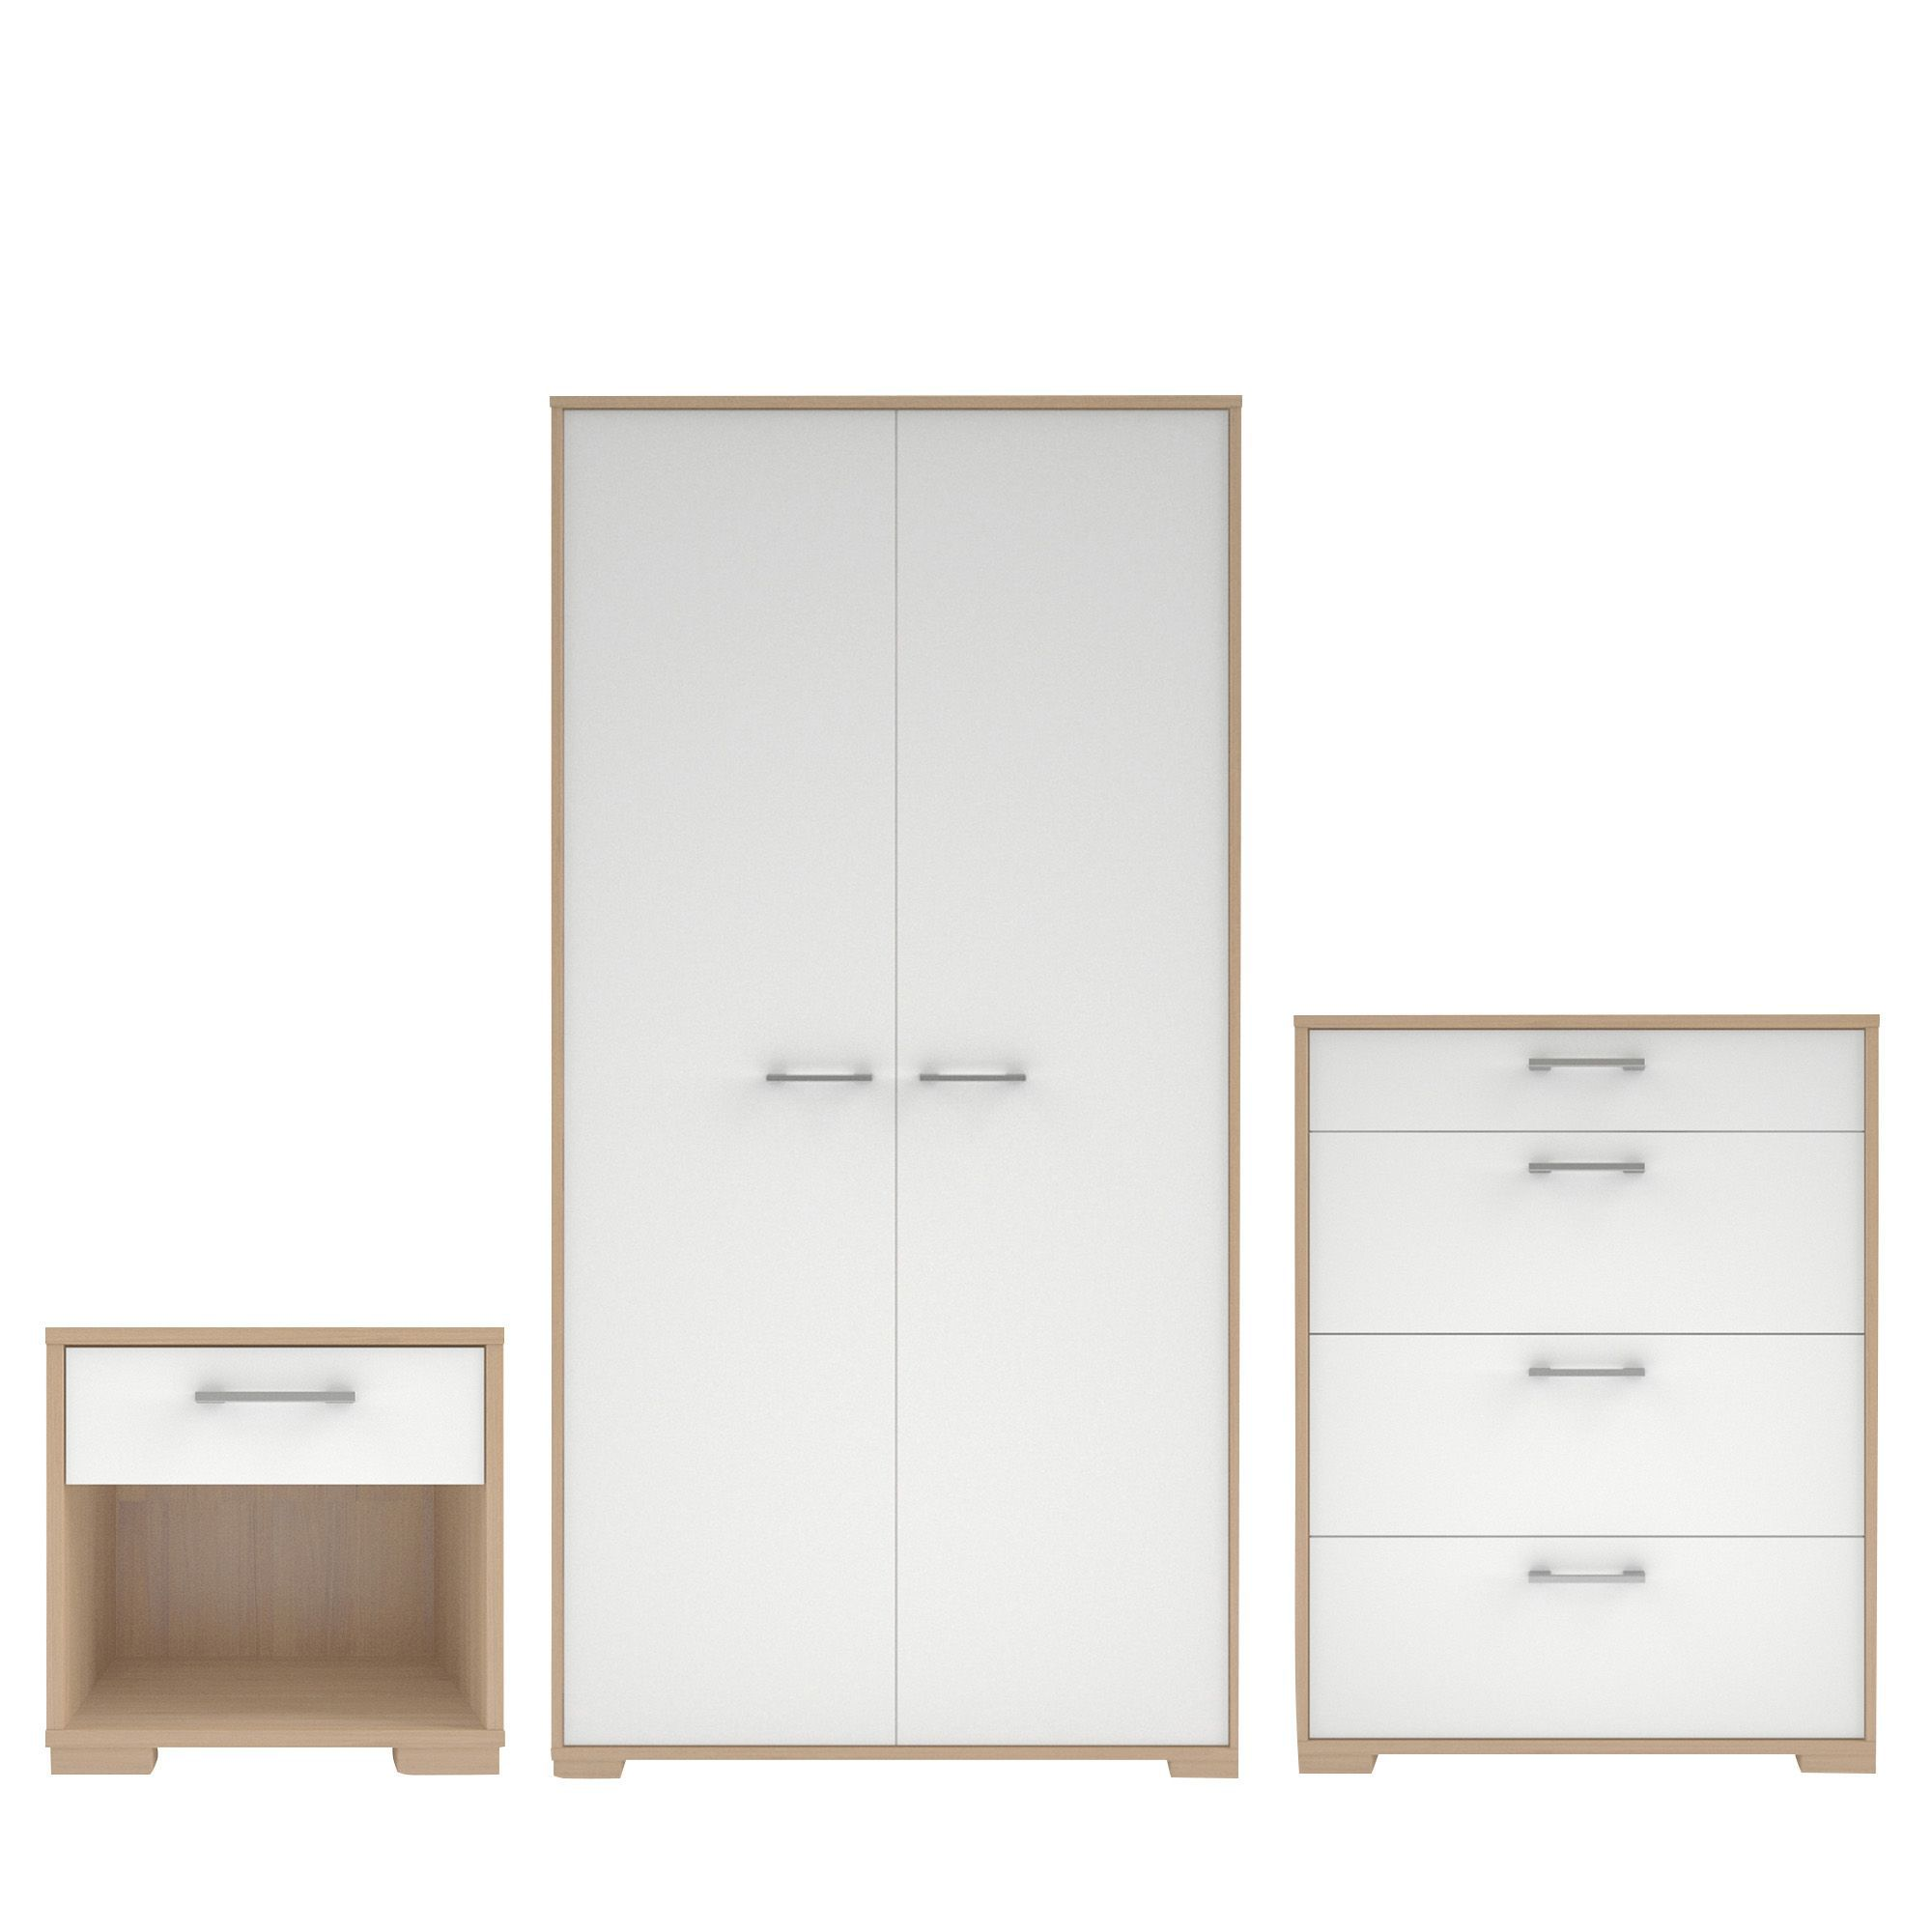 Evie Gloss White Oak Effect 3 Piece Bedroom Furniture Set